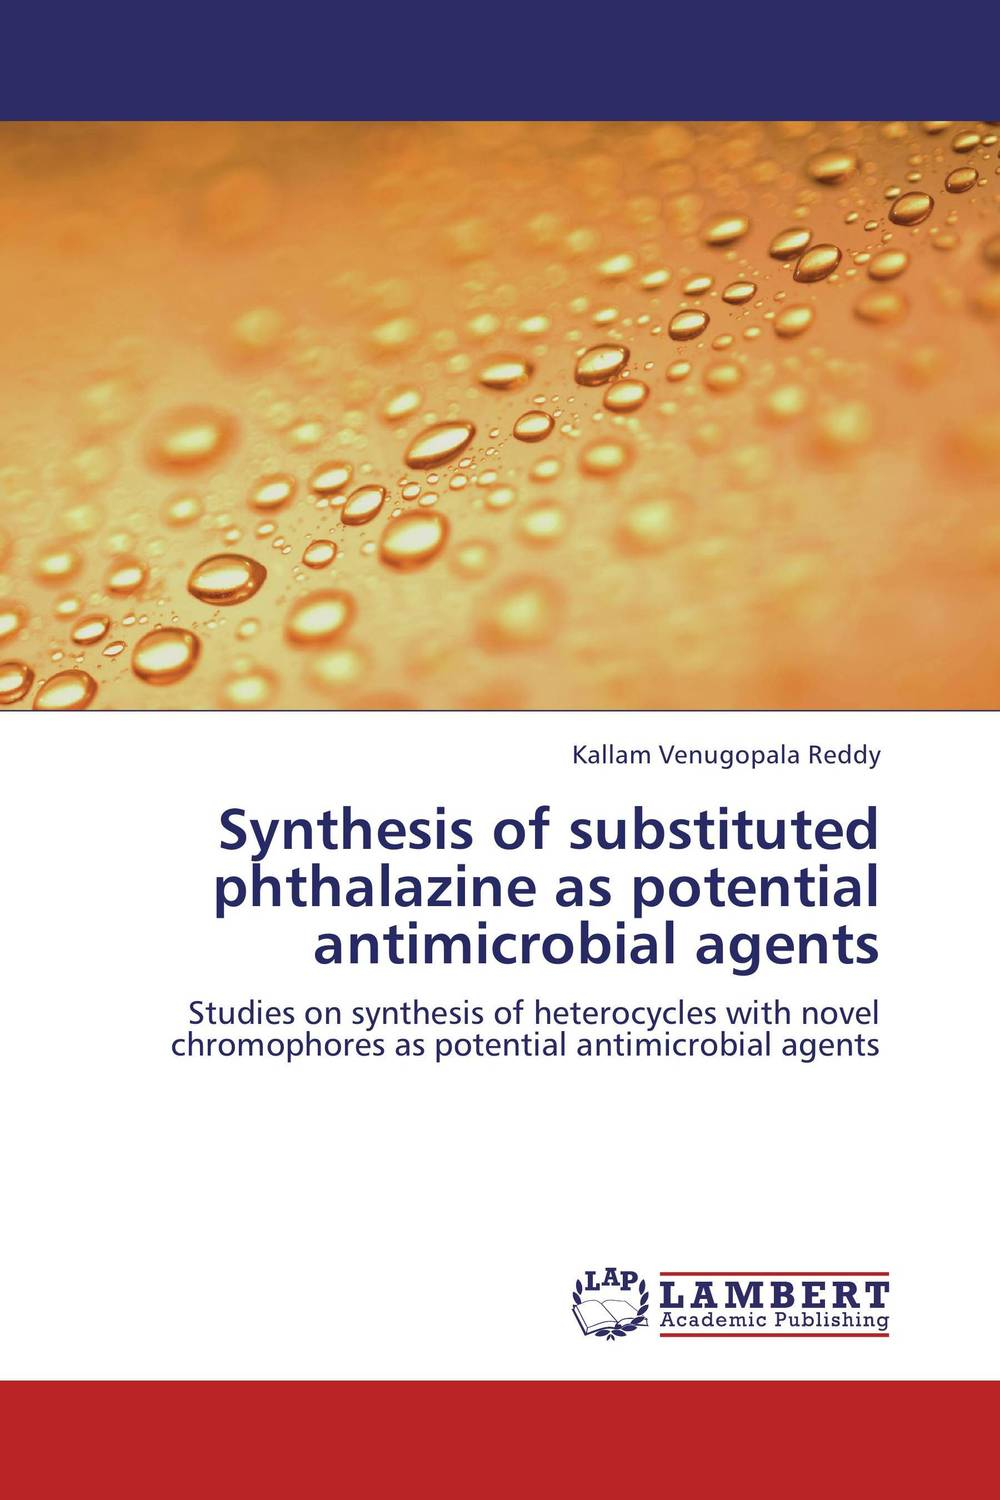 Synthesis of substituted phthalazine as potential antimicrobial agents manish solanki synthesis and antimicrobial actvity of 1 4 dihydropyridines